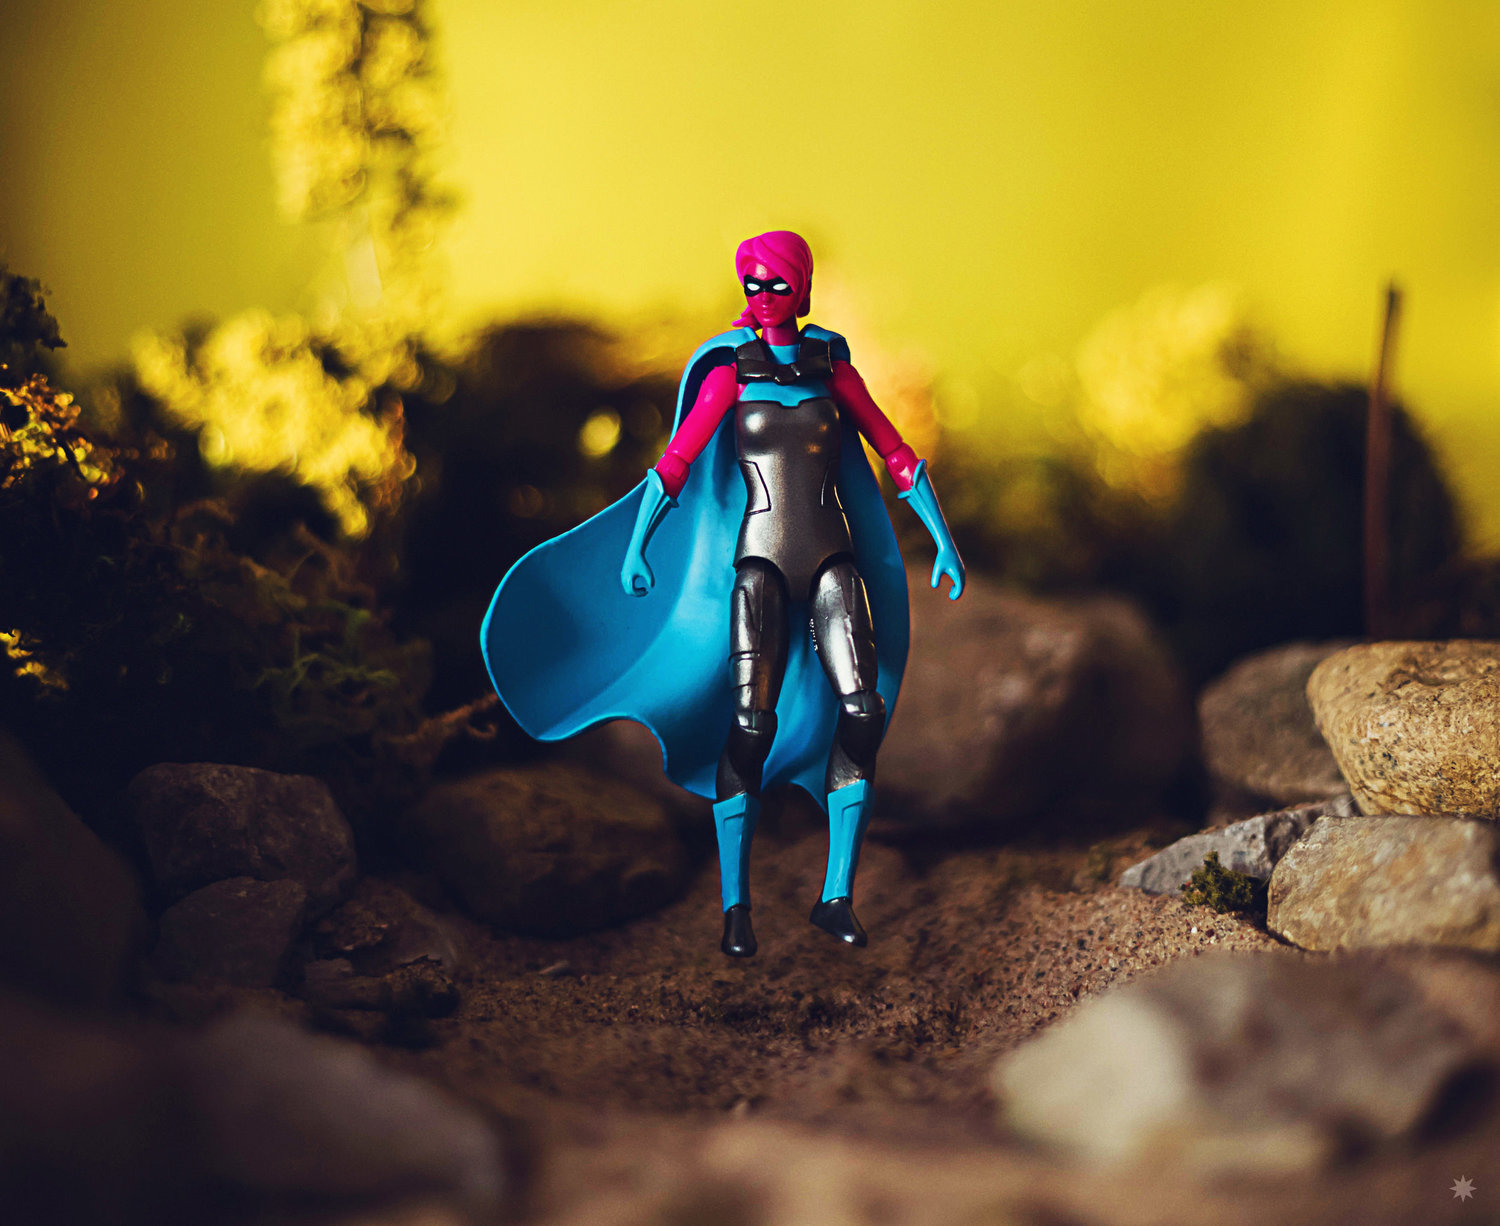 I-am-elemental-toy-photo-action-figure-photography-girl-power.jpg